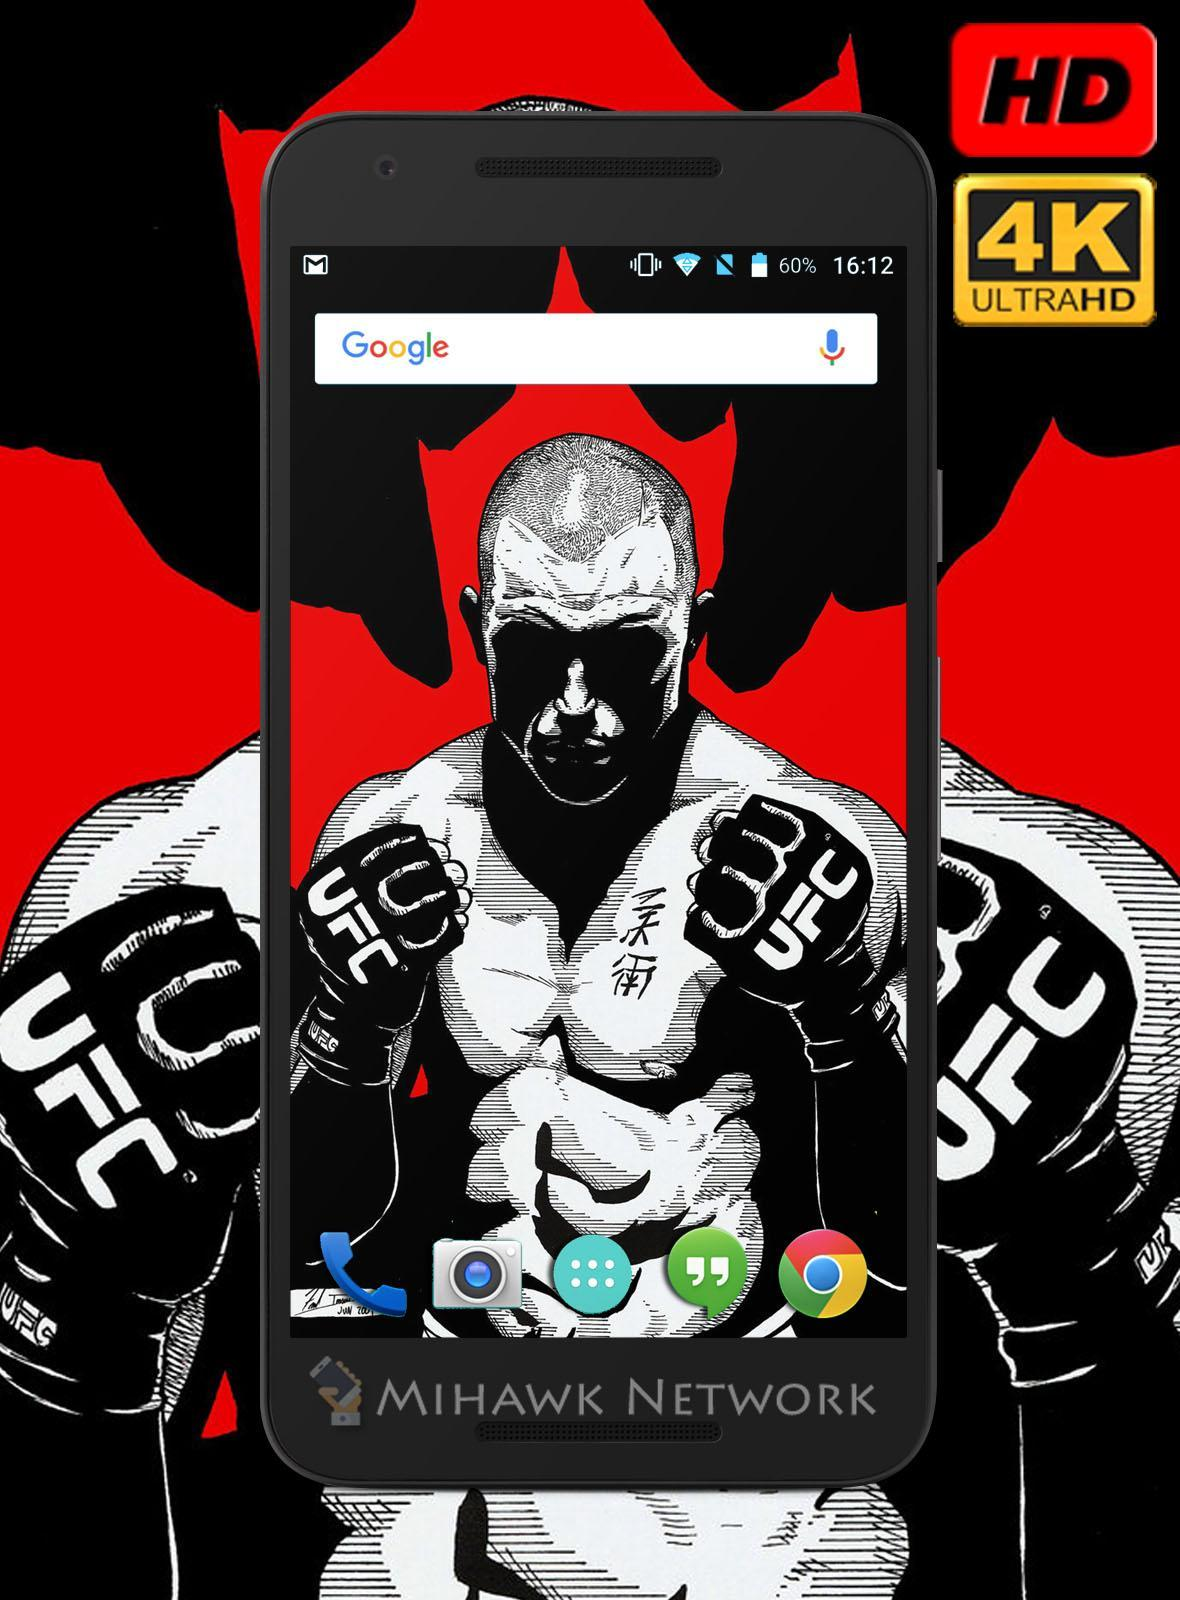 Ufc Iphone Wallpaper Posted By Michelle Walker